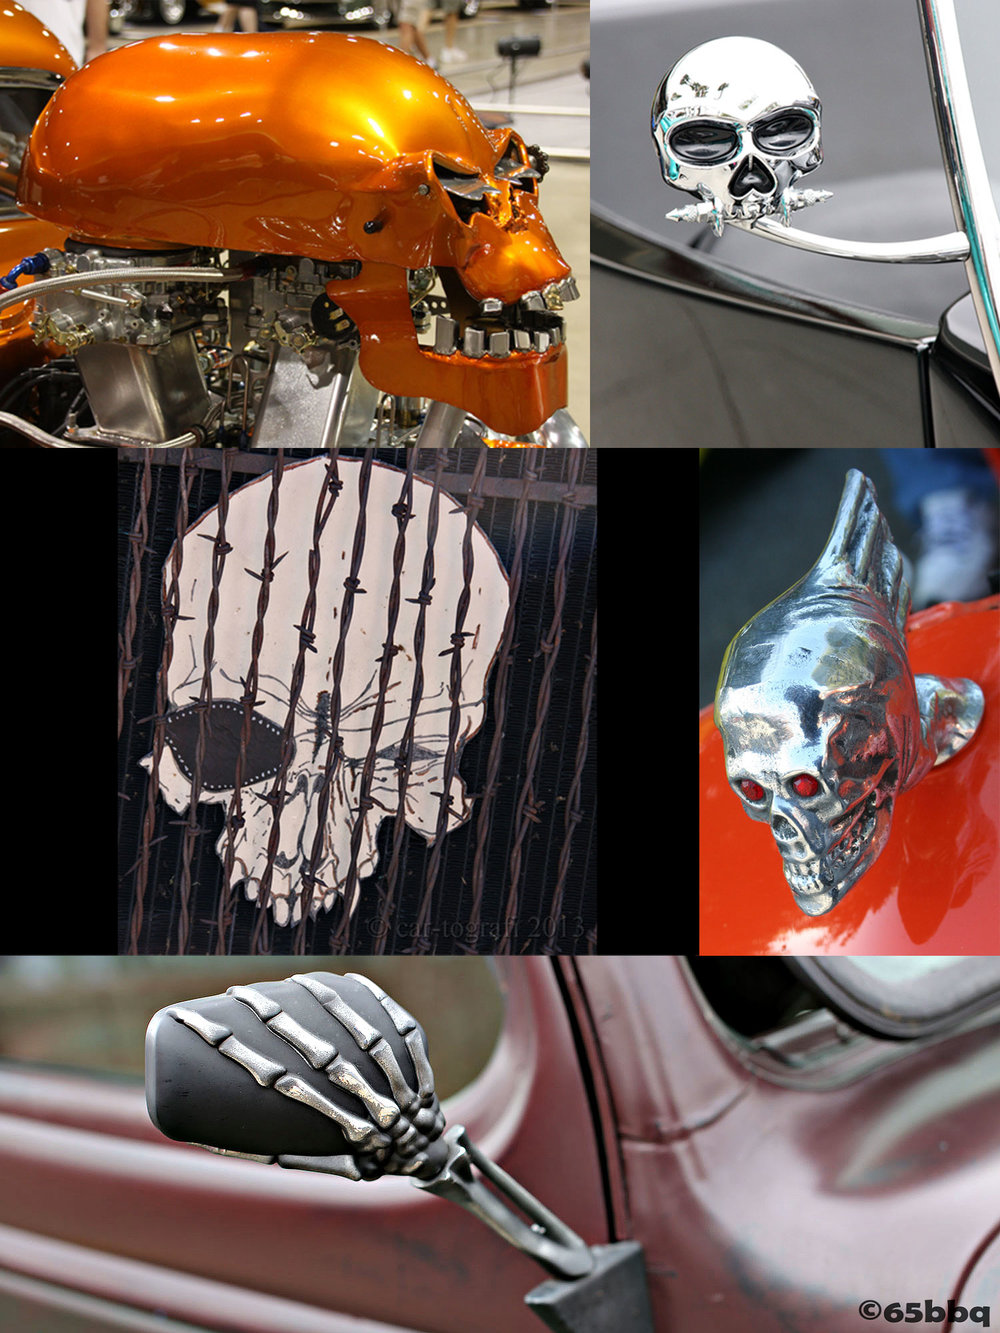 Skeletons and skulls are mixing it up 65bbq.